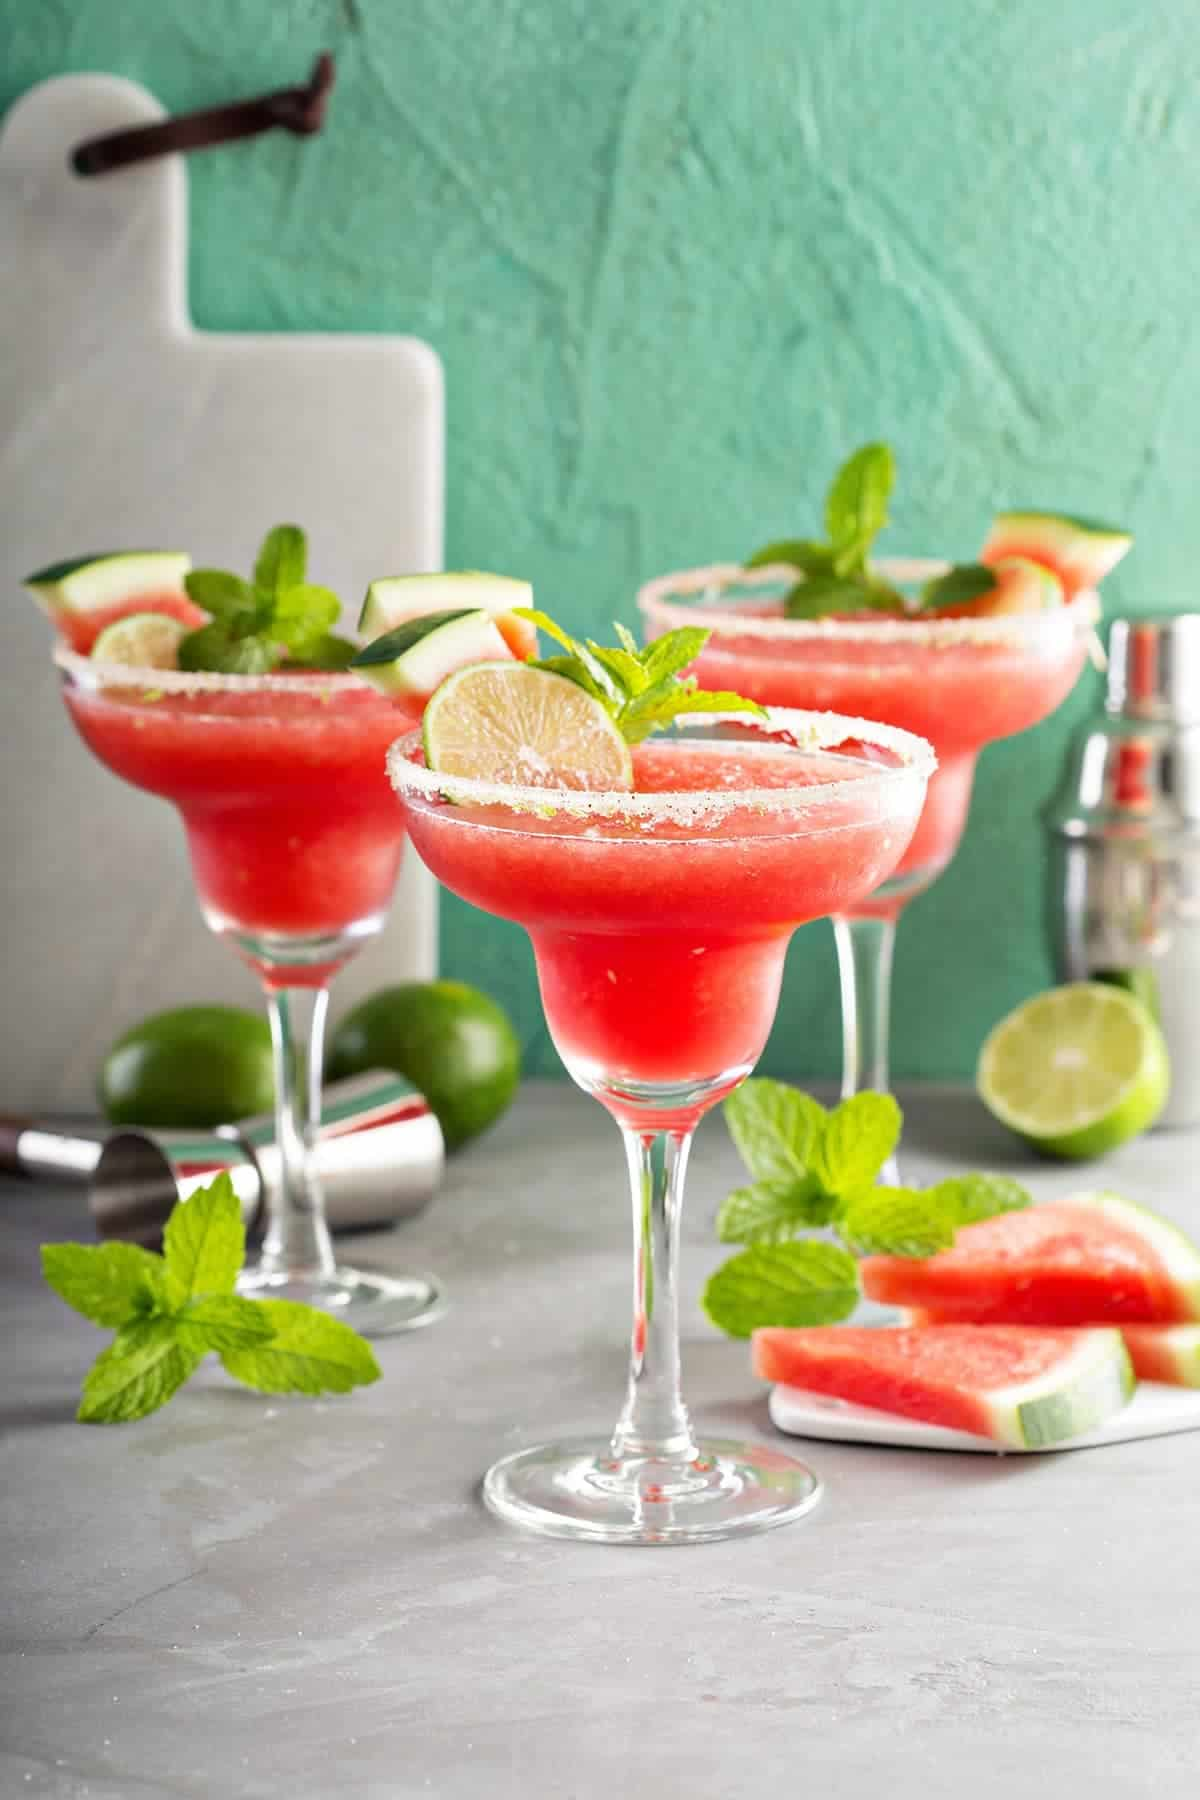 Watermelon margaritas with sugar rim and lime & mint garnish. Cocktail shaker, mint, limes and slices of watermelon in background for layering.